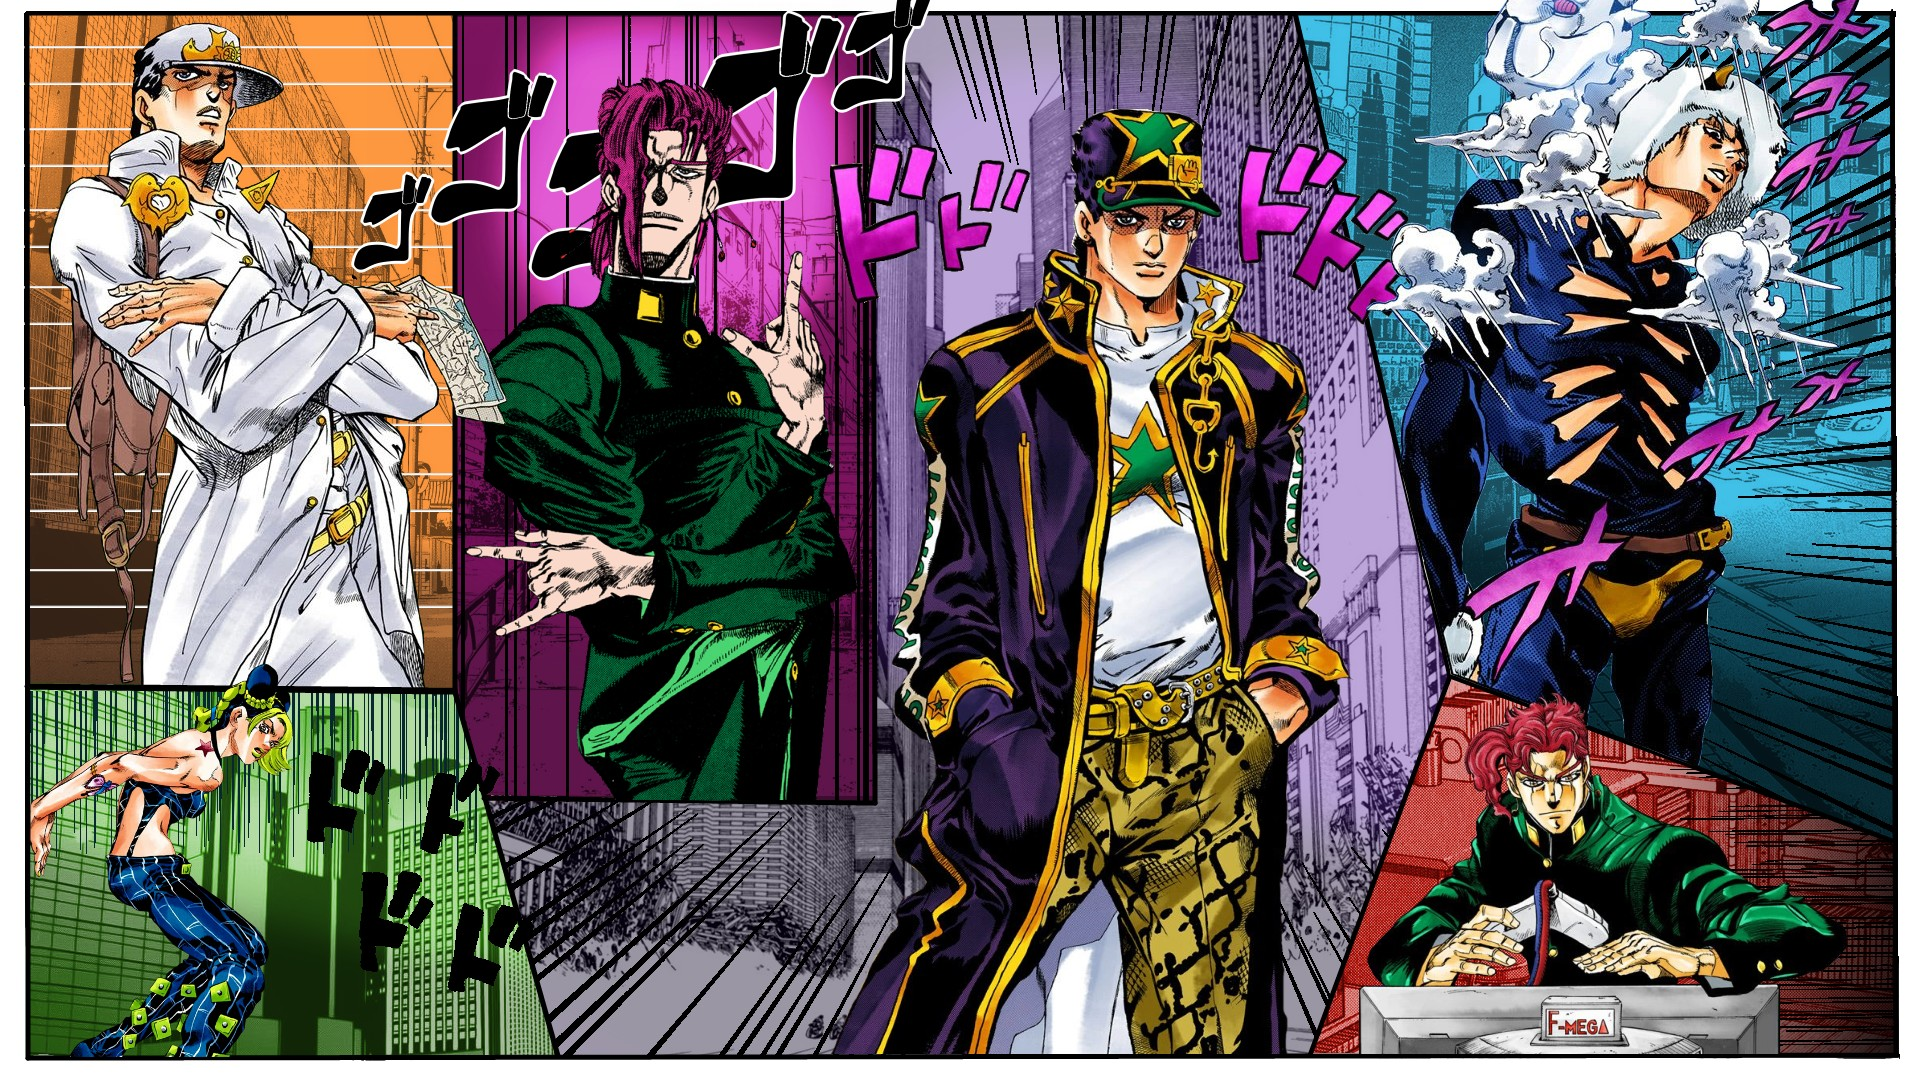 Jojo Manga Wallpaper